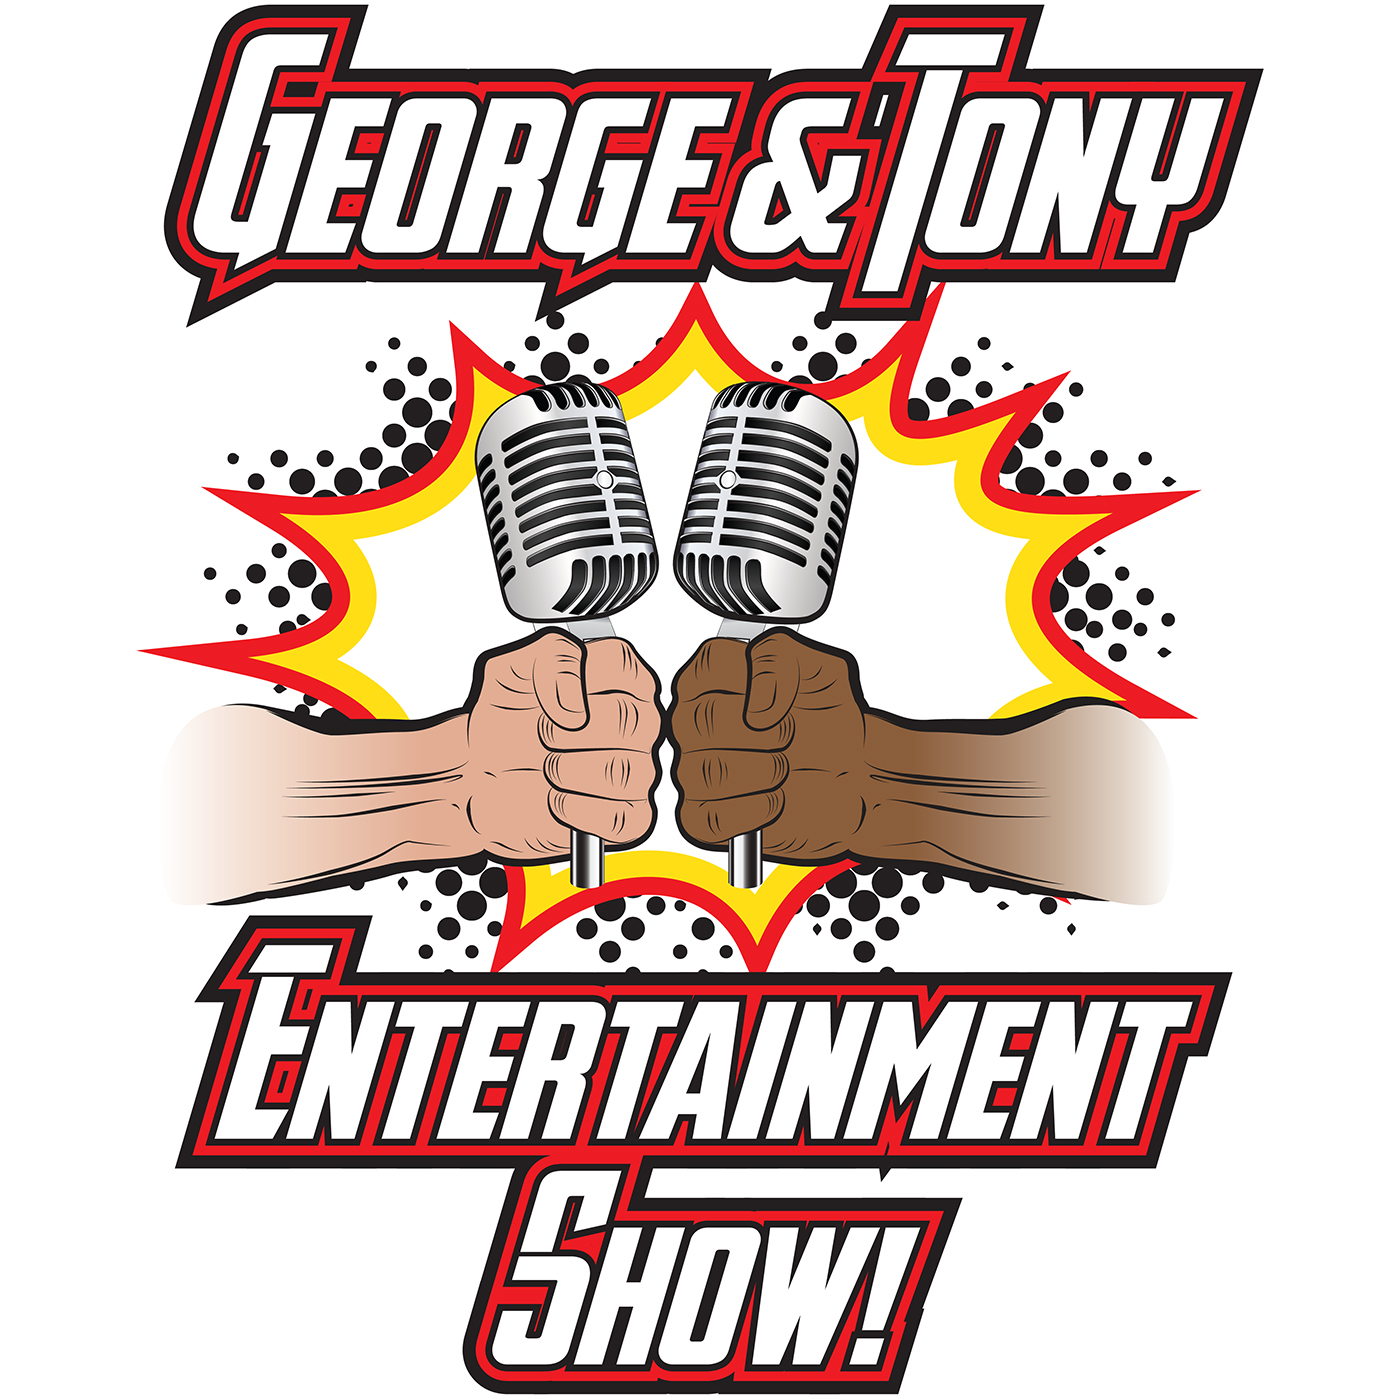 George and Tony Entertainment Show #24